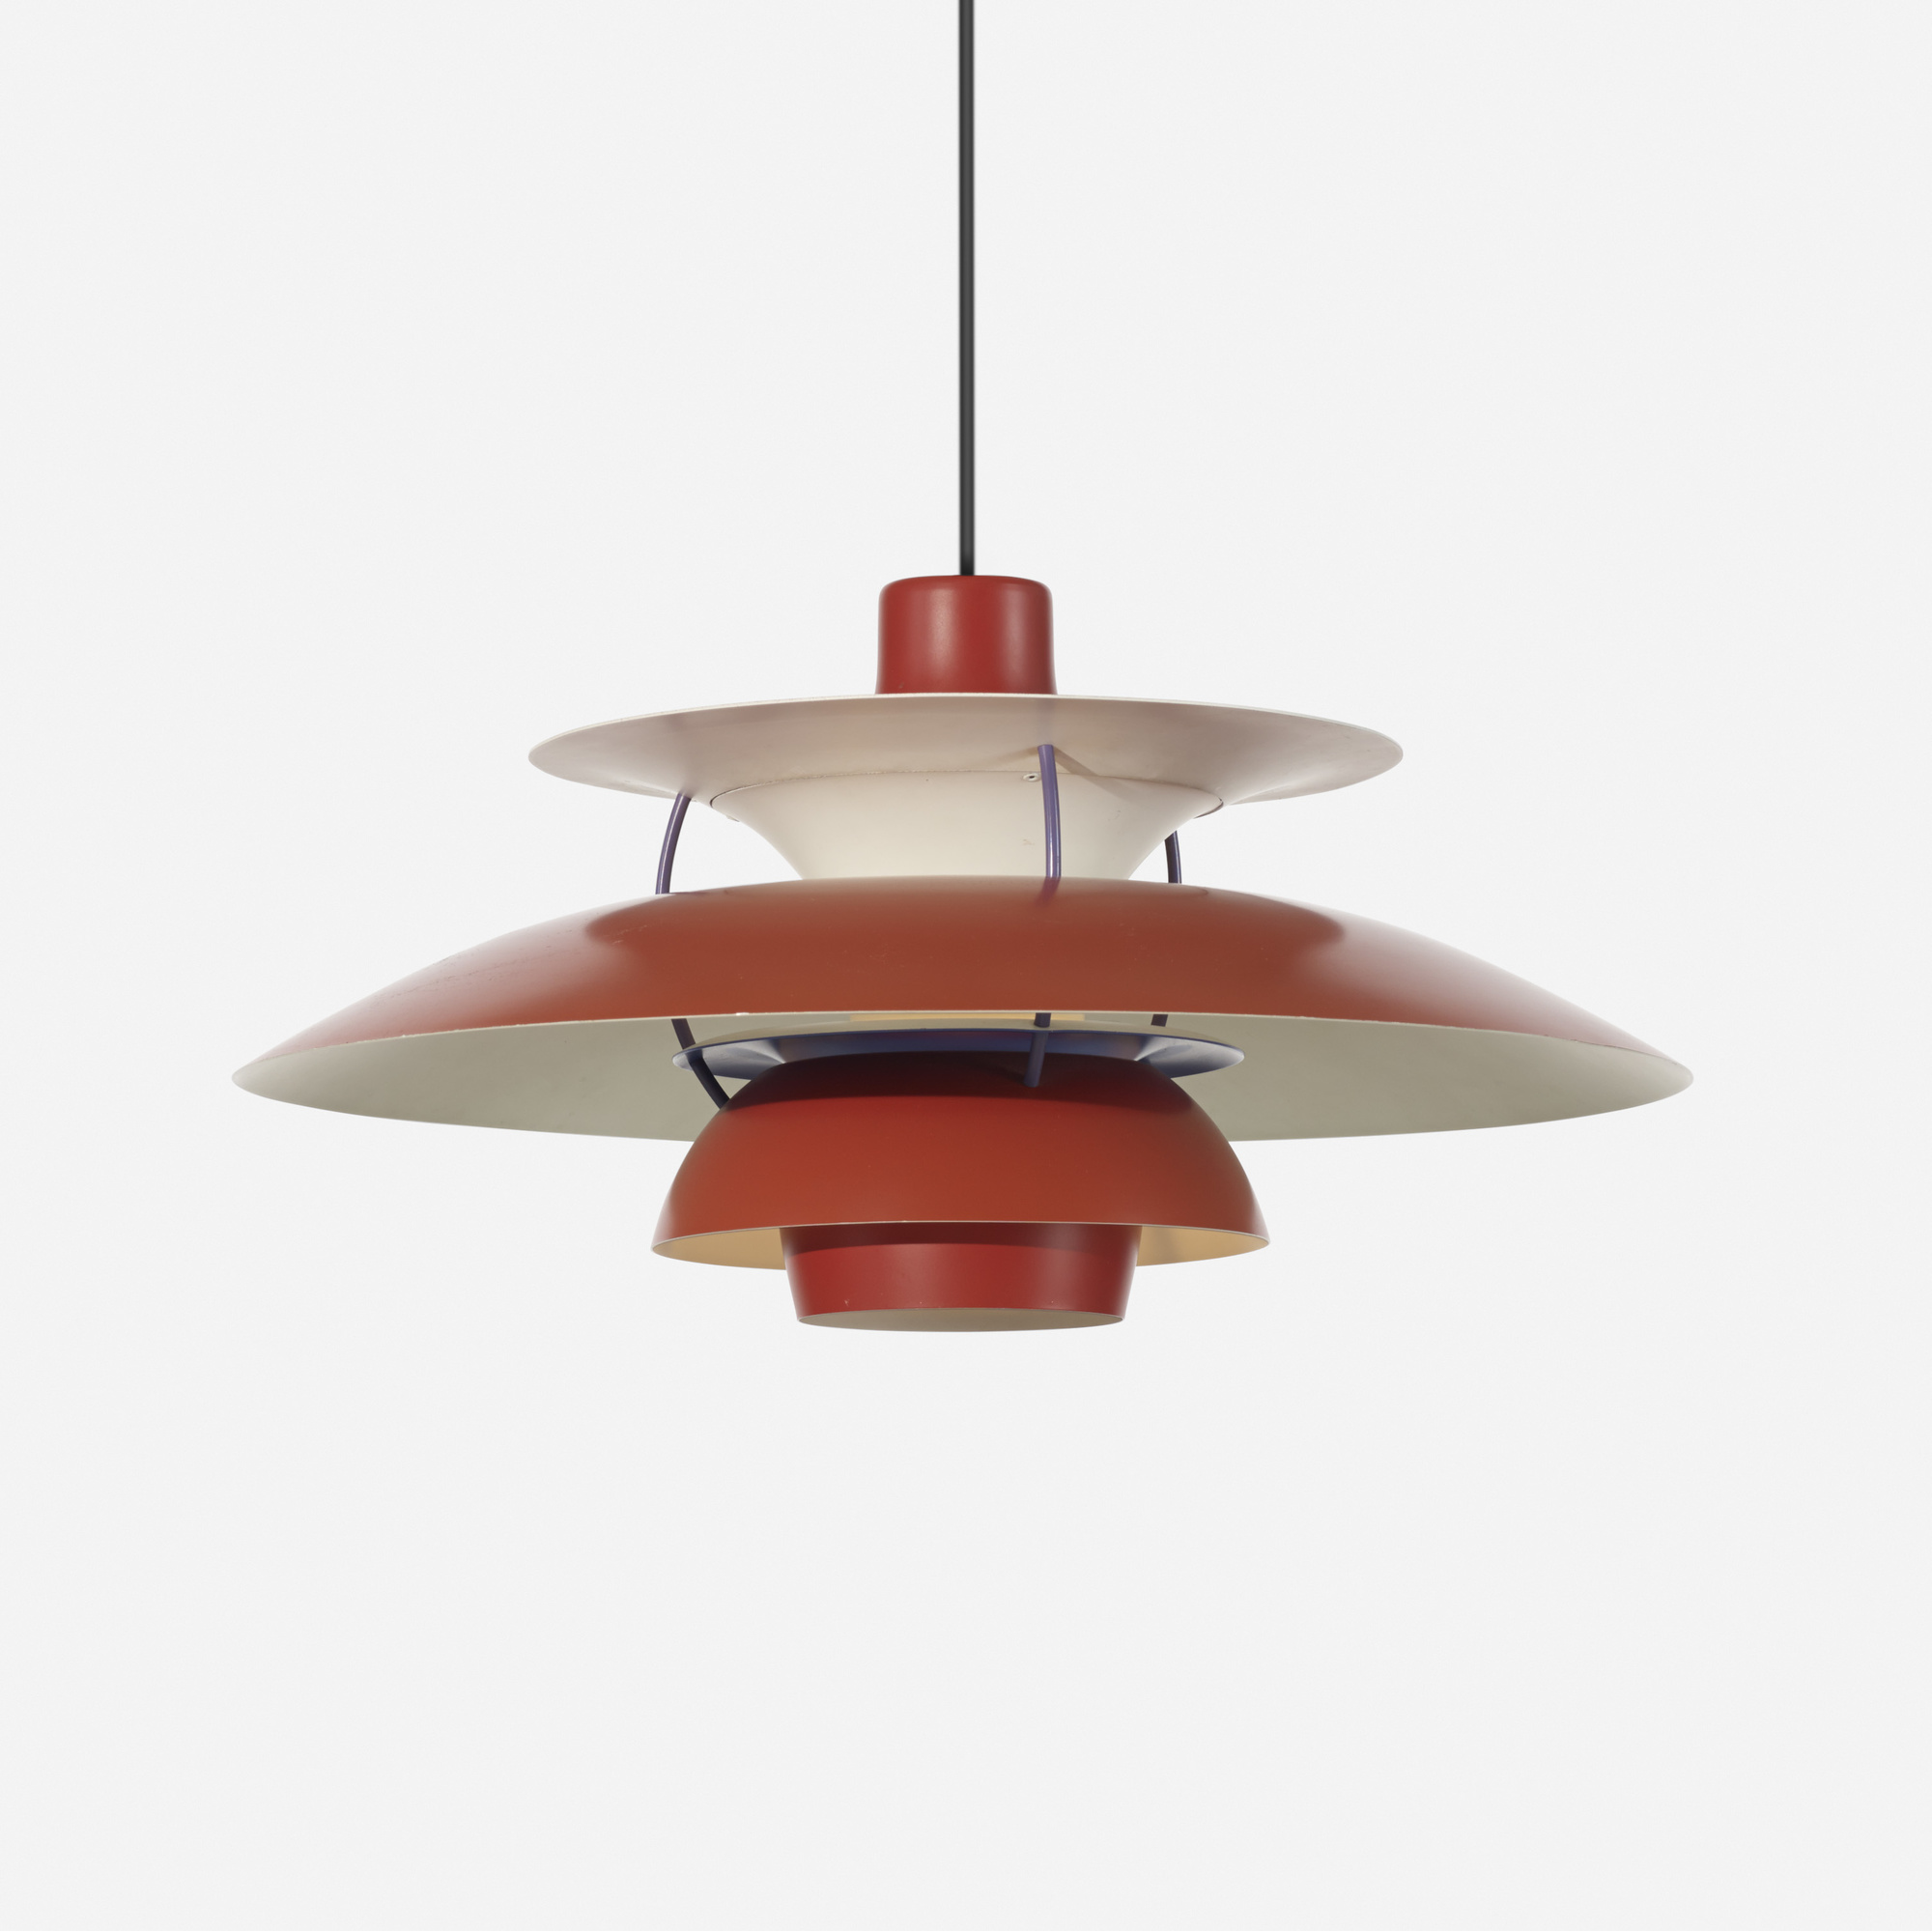 201 poul henningsen ph5 pendant scandinavian design 8 may 2014 201 poul henningsen ph5 pendant 1 of 3 aloadofball Choice Image